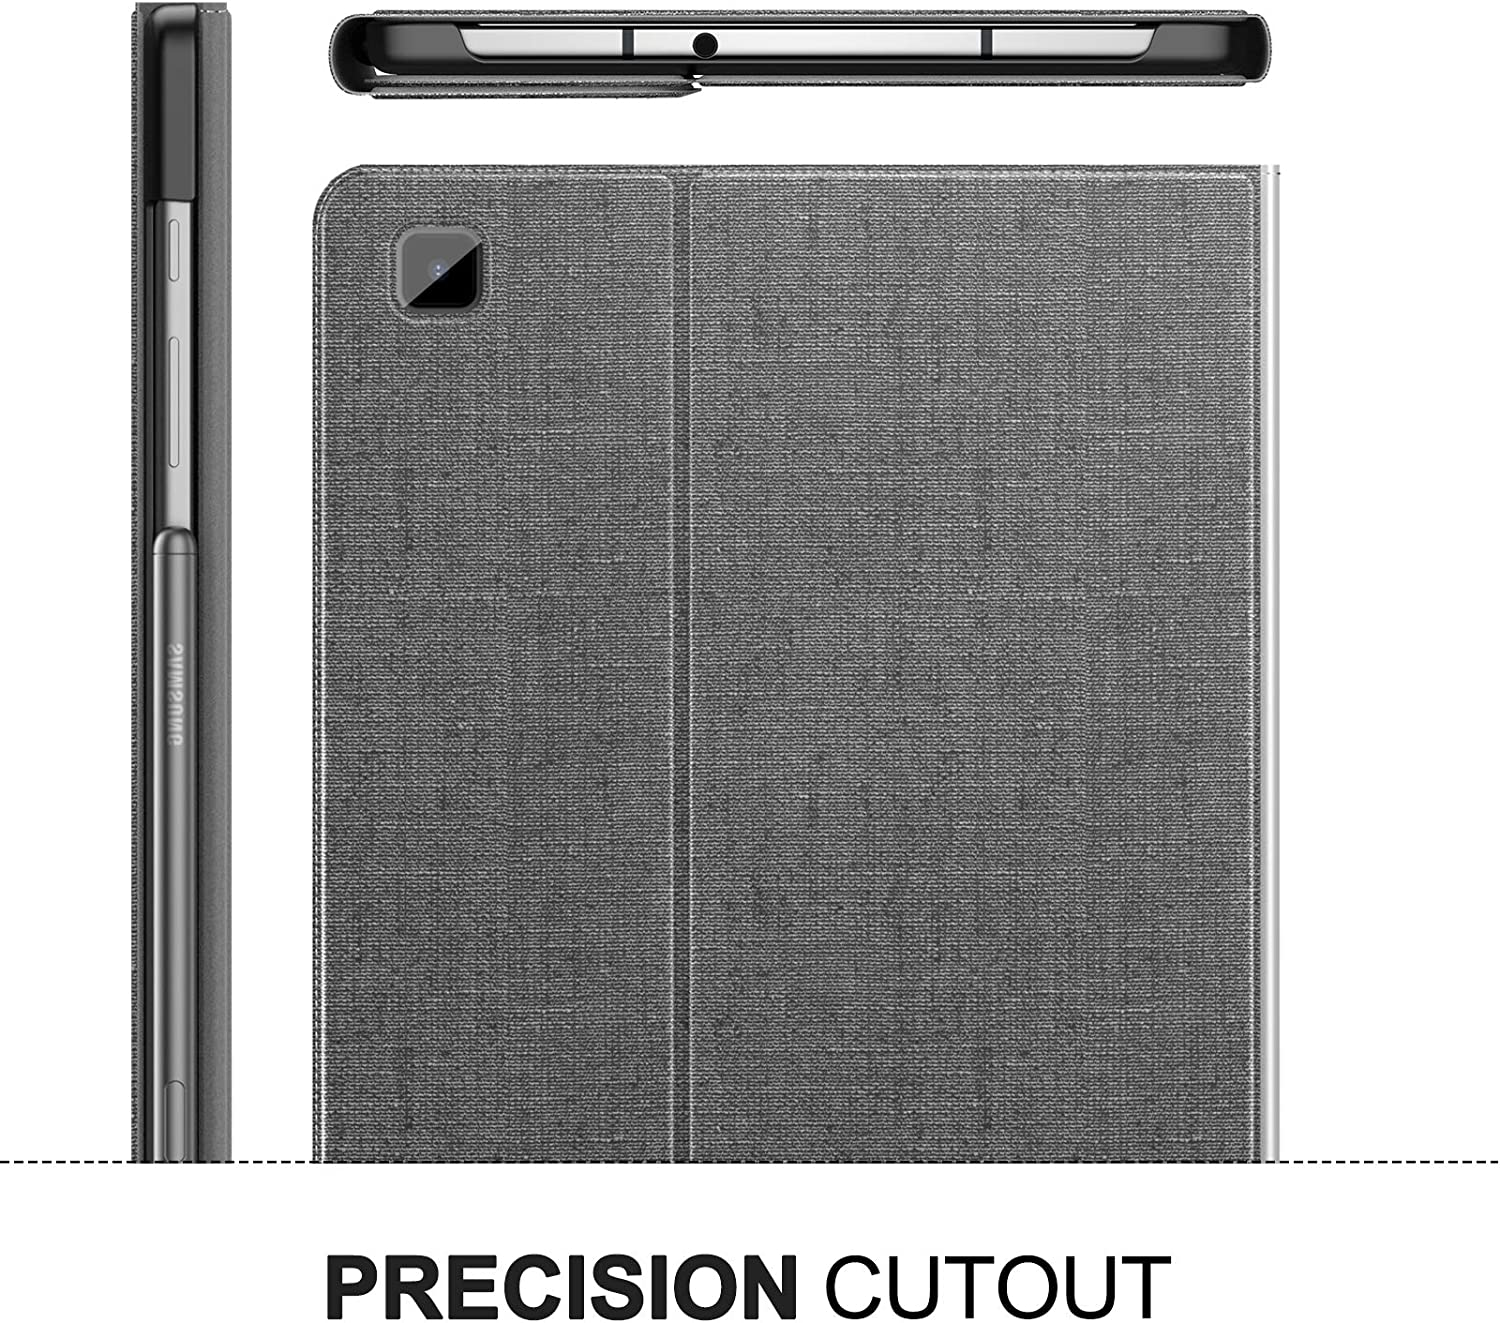 Multiple Angle Stand Case Fit Samsung Galaxy Tab S6 Lite 10.4 Inch Model SM-P610//P615 2020 Release Tablet INFILAND Galaxy Tab S6 Lite Case Gray Auto Wake//Sleep